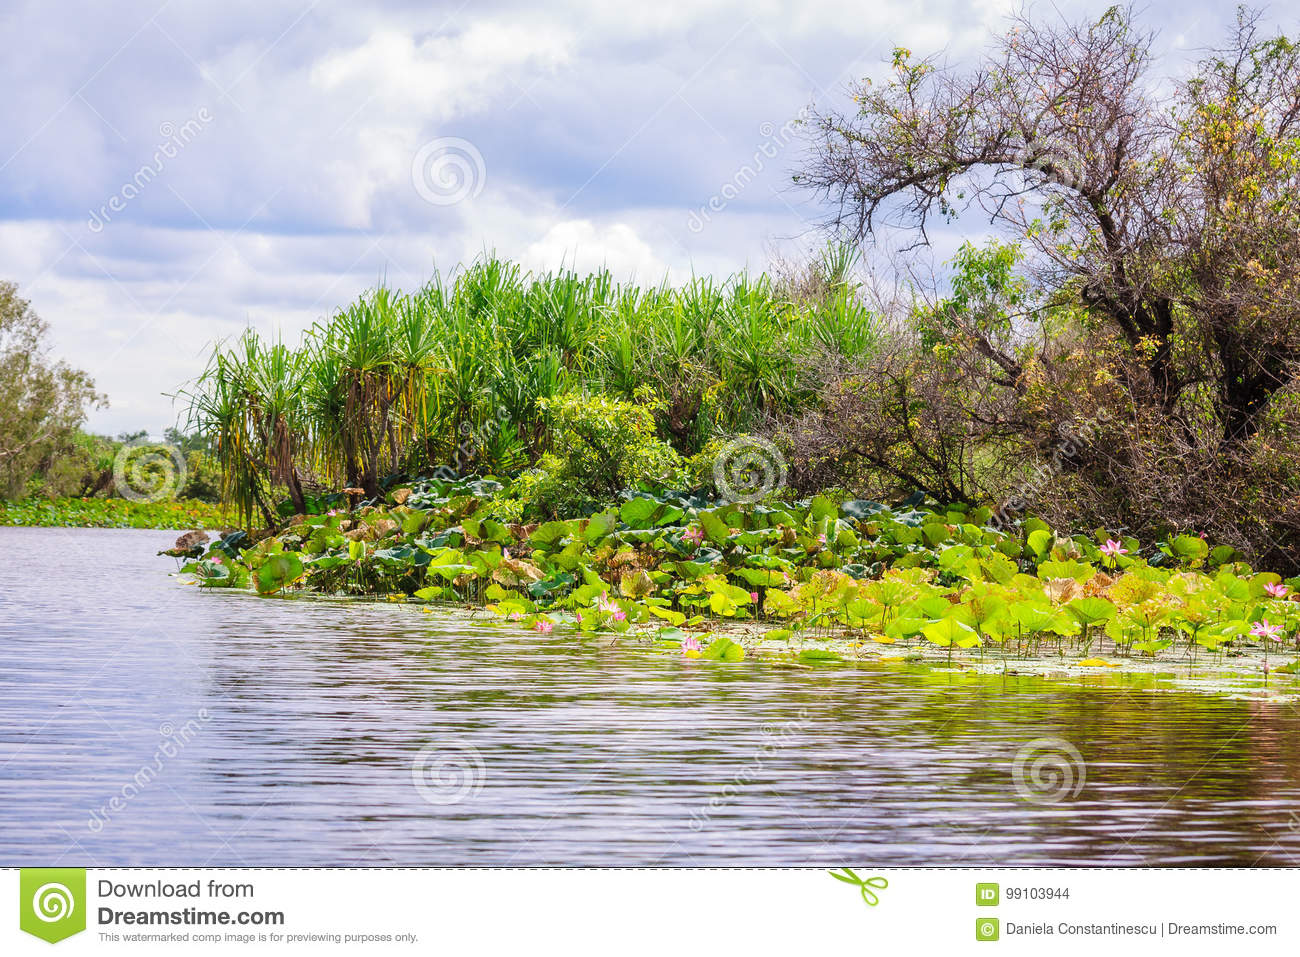 Download Corroboree Billabong Calm Waters, With Its Banks Covered In Lotuses In Nothern Territory, Australia Stock Photo - Image of morning, birds: 99103944